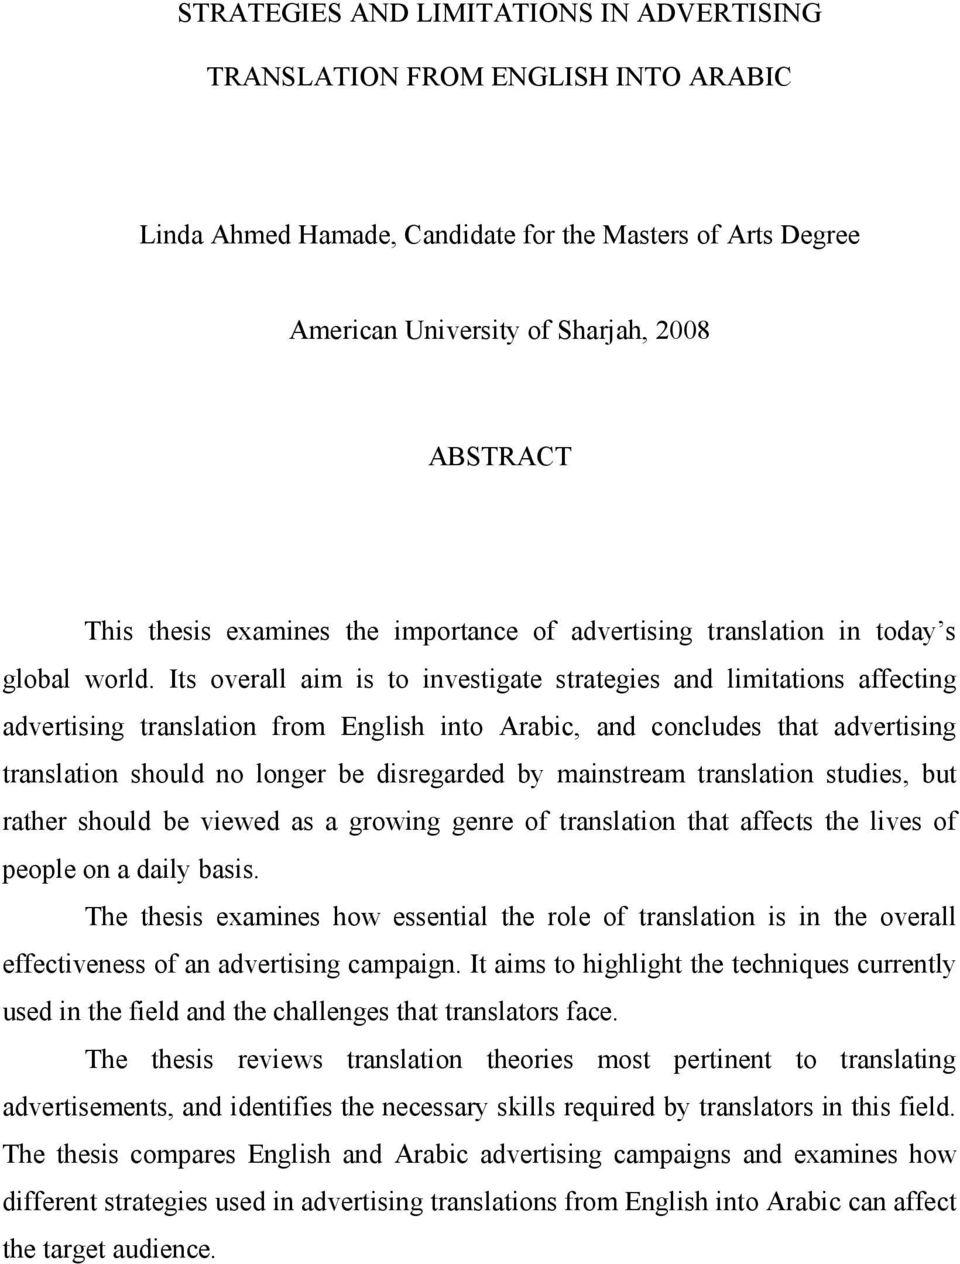 Its Overall Aim Is To Investigate Strategies And Limitations Affecting Advertising Translation From English Into Arabic